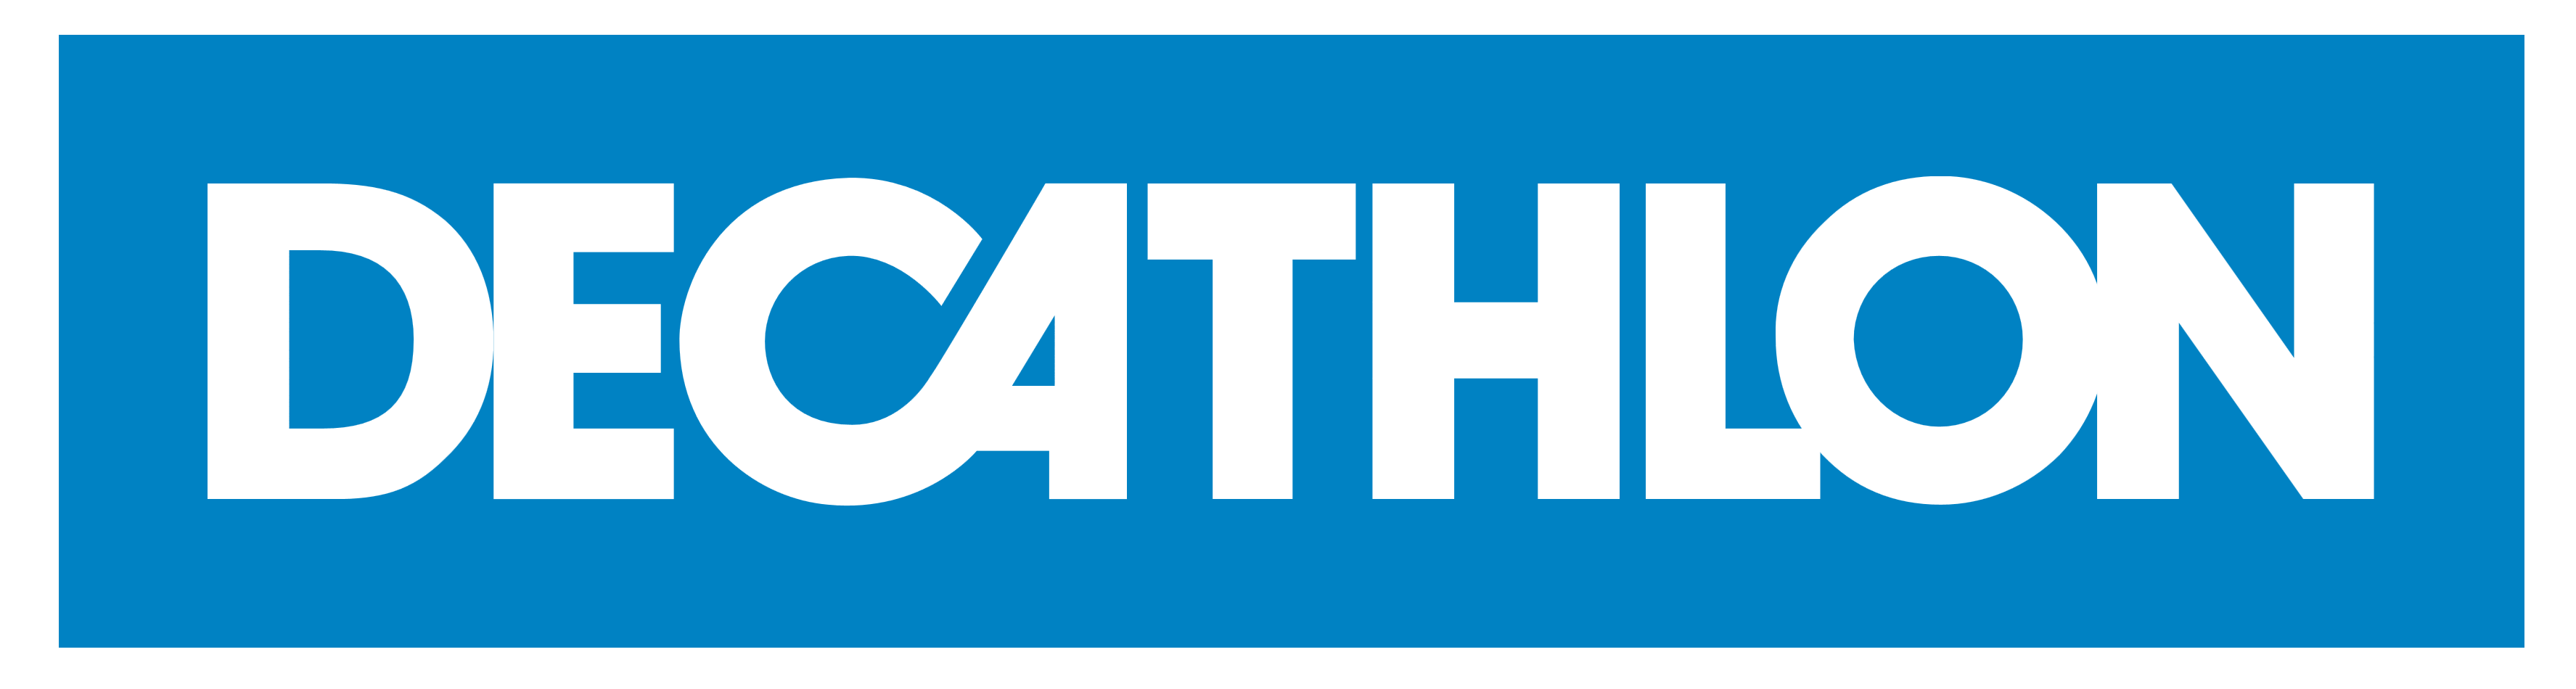 Decathlon – Logos, Brands And Logotypes - Decathlon Logo PNG